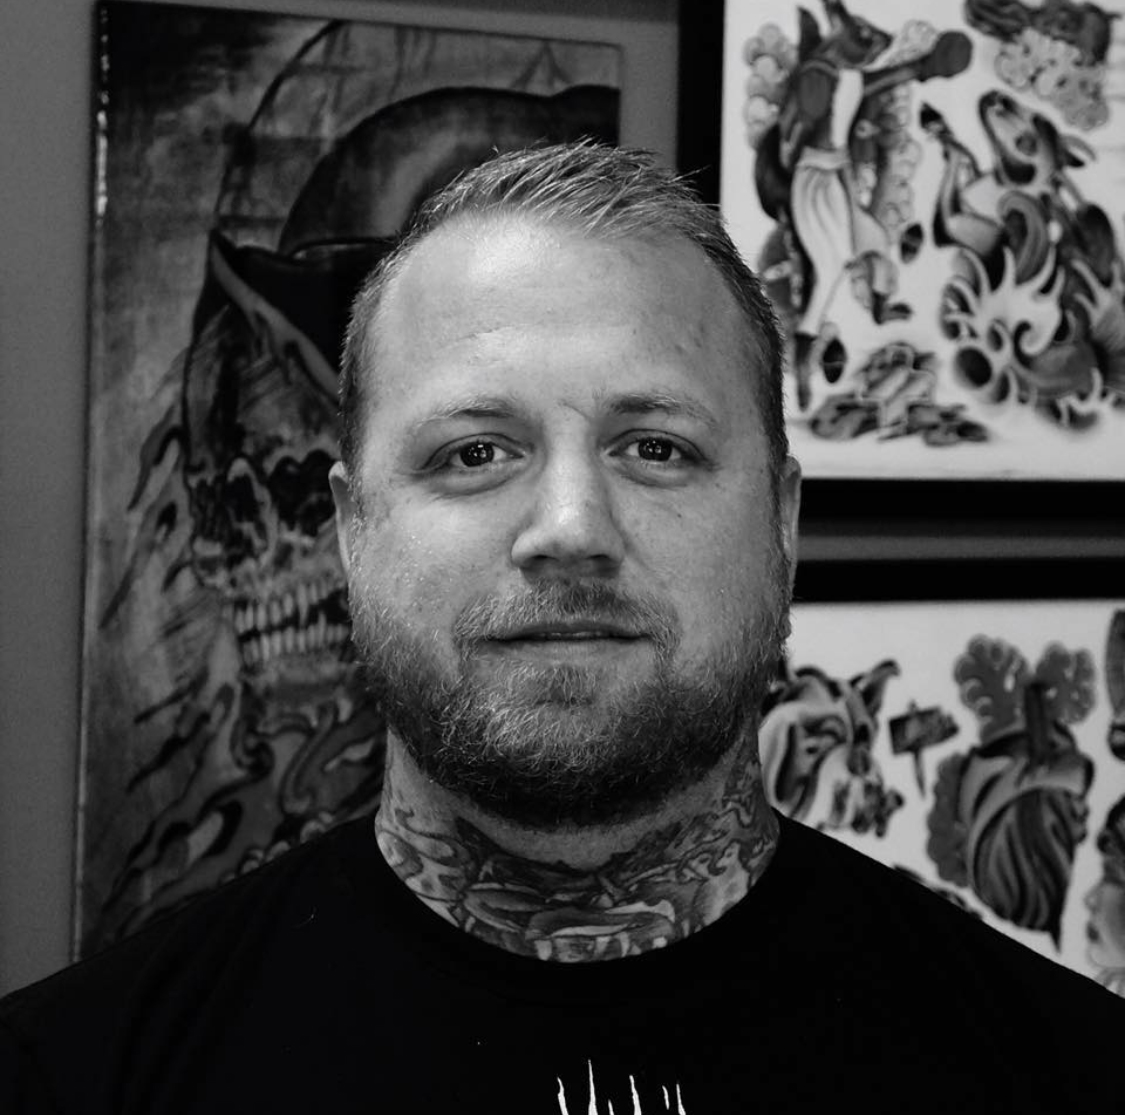 Nate Browns 2019 Okanagan Tattoo Show & Brewfest Artist